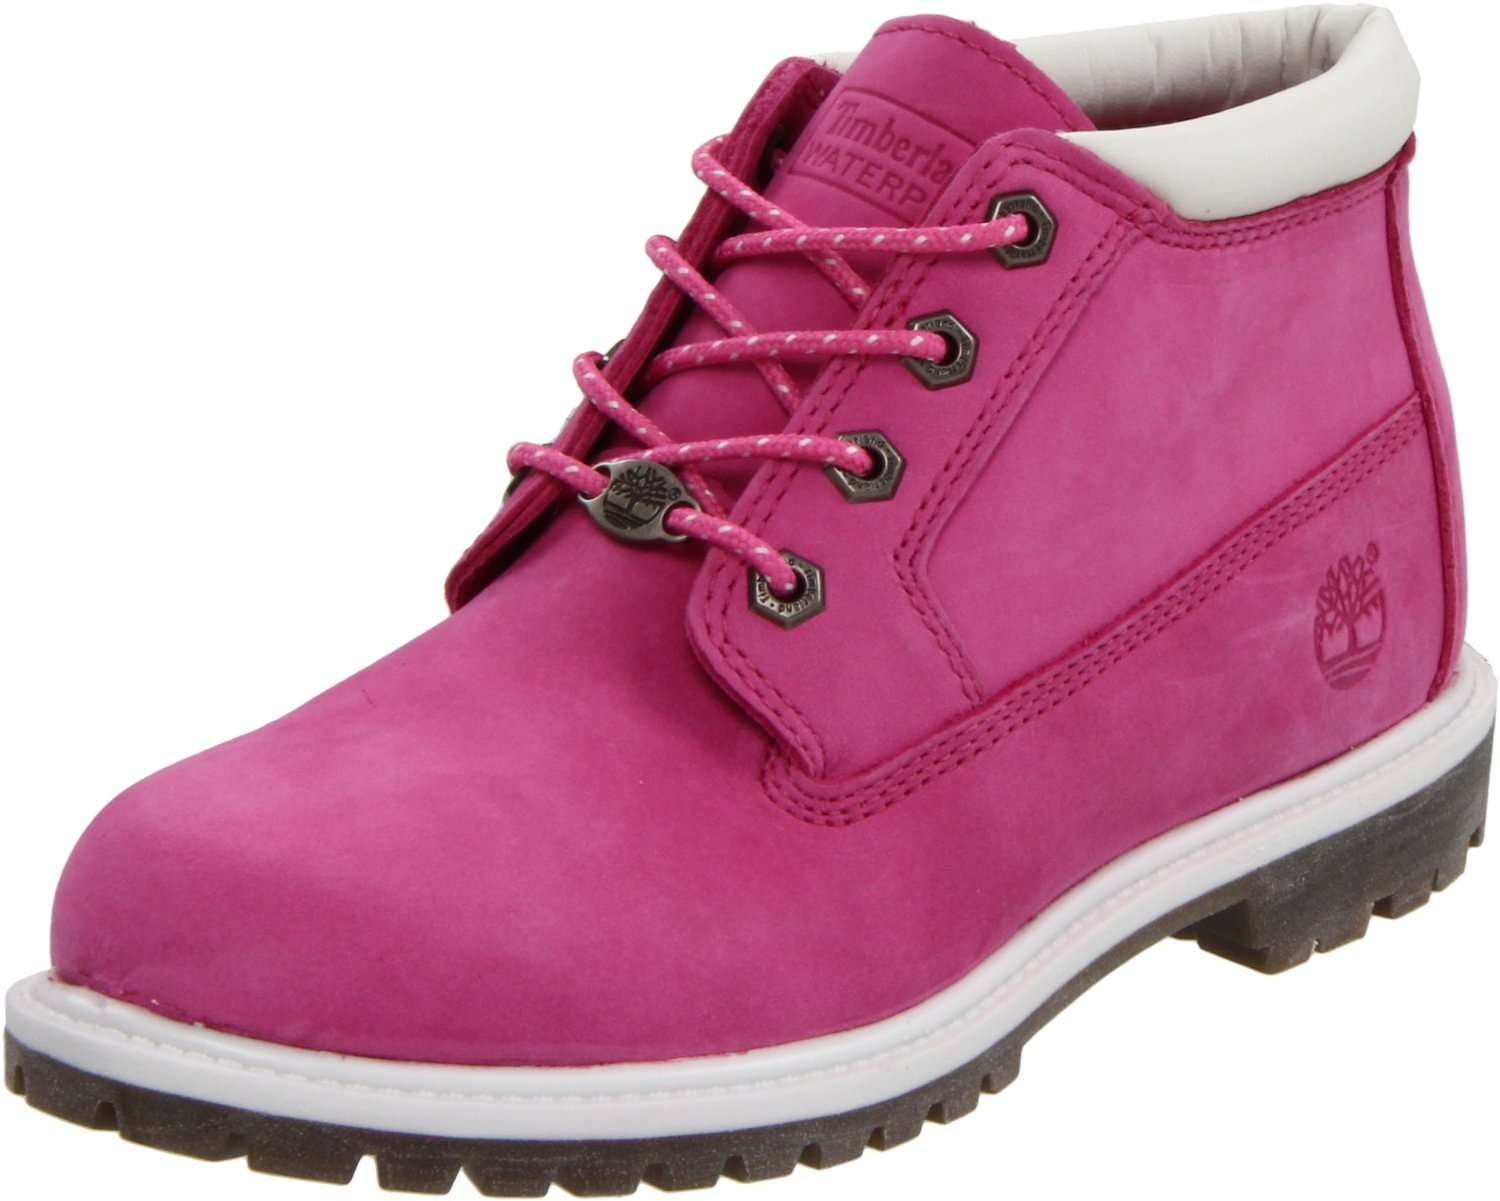 Book Of Timberland Boots For Women Pink In Uk By Sophia